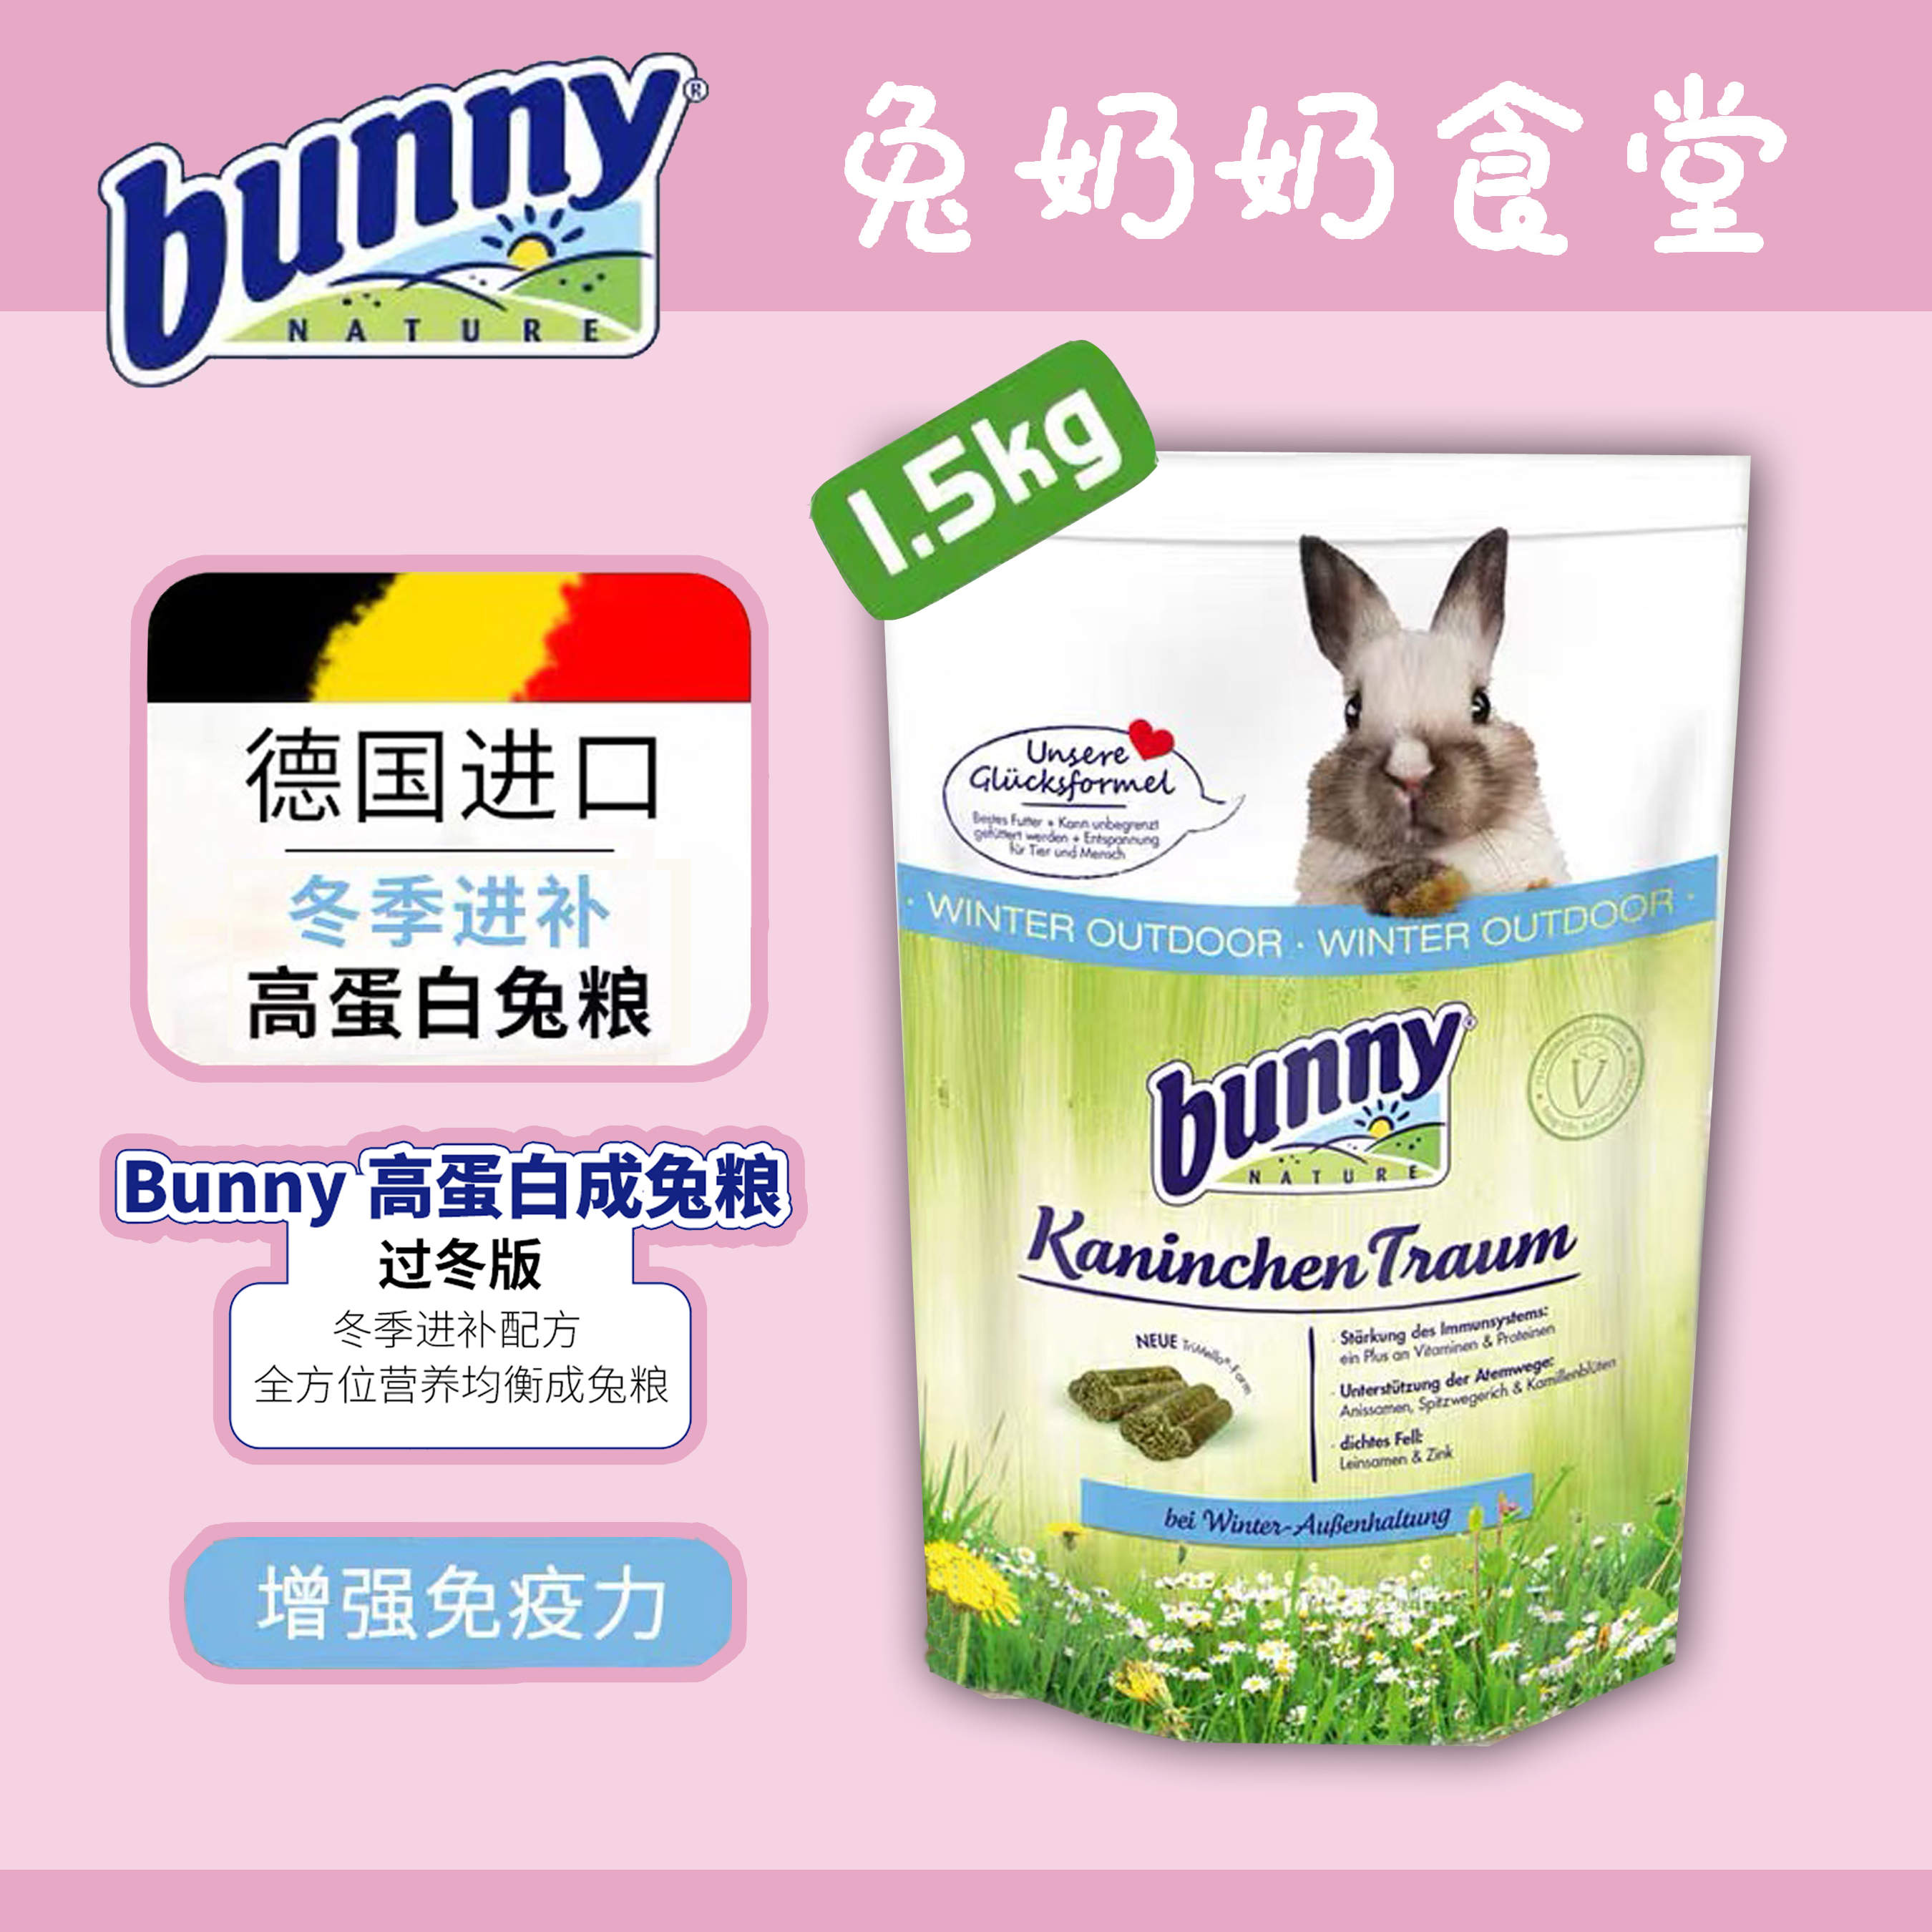 Spot Bunny Outdoor Winter High protein Rabbit Food Collection Edition